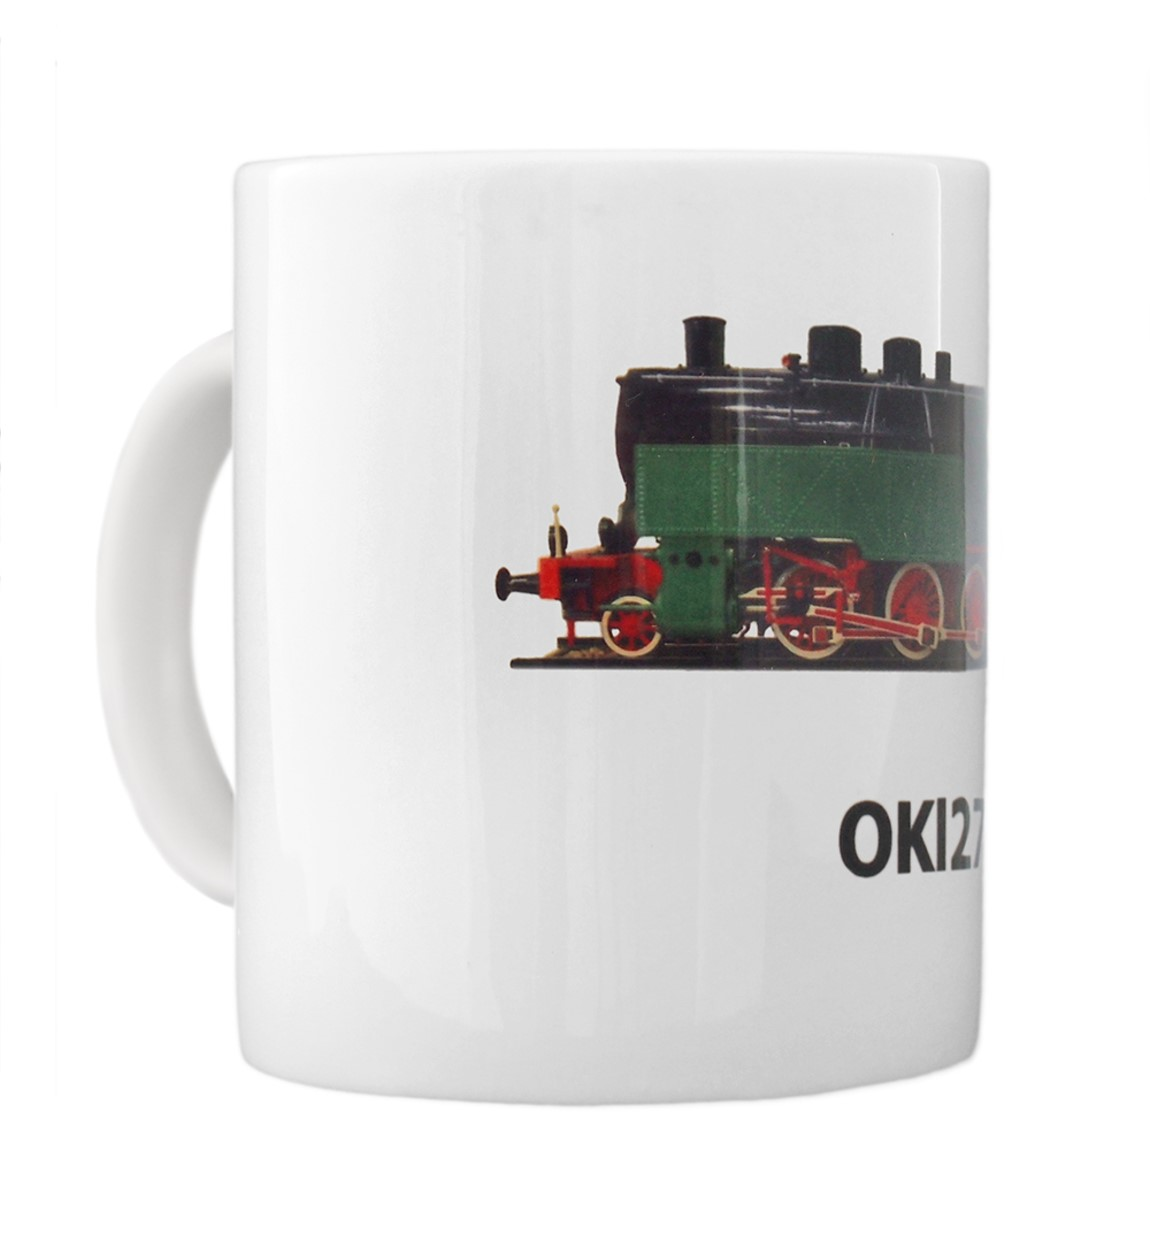 engine OKl27 mug left view